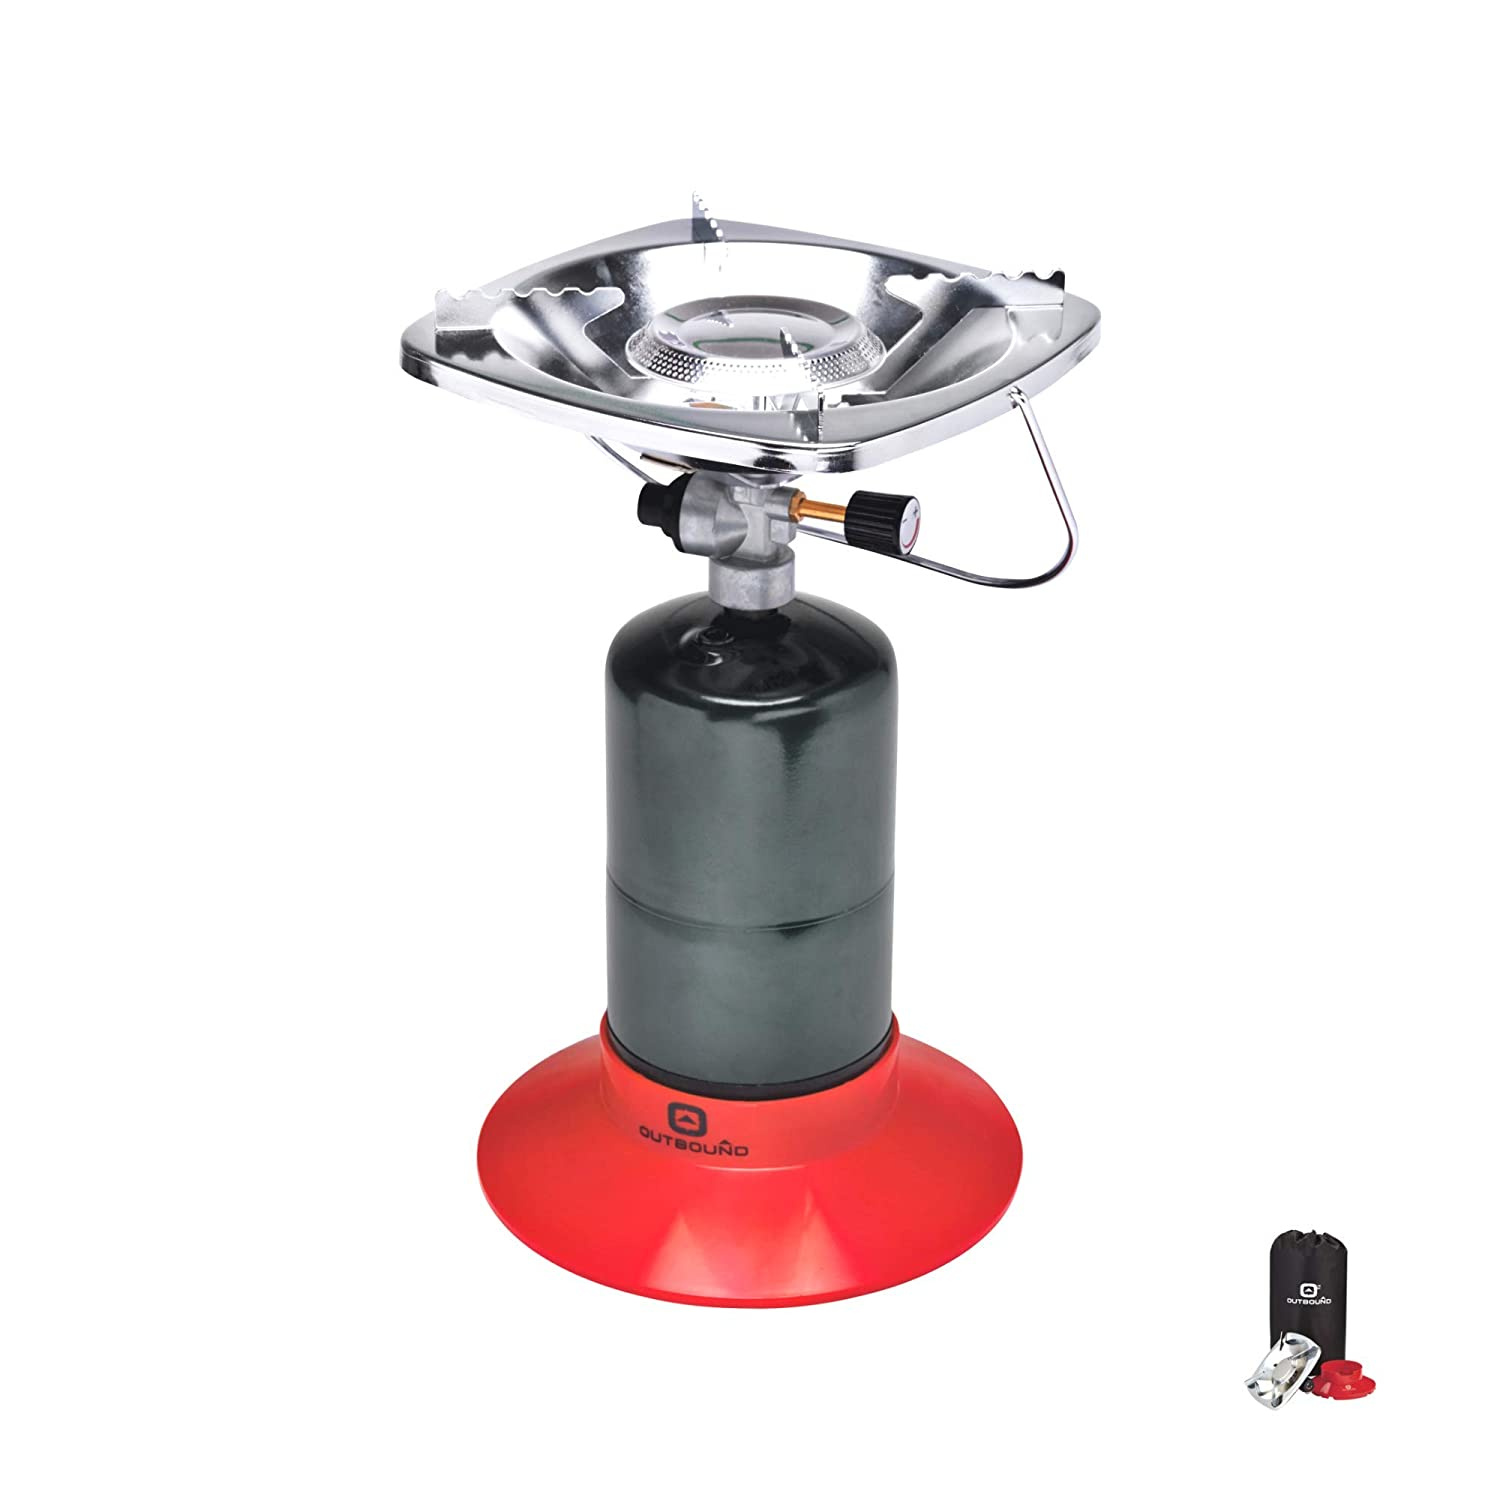 Outbound Propane Stove | Portable Gas Stove Single Burner | Perfect Bottletop Camp Stove for Backpacking, Camping, Fishing, and Outdoor Cooking